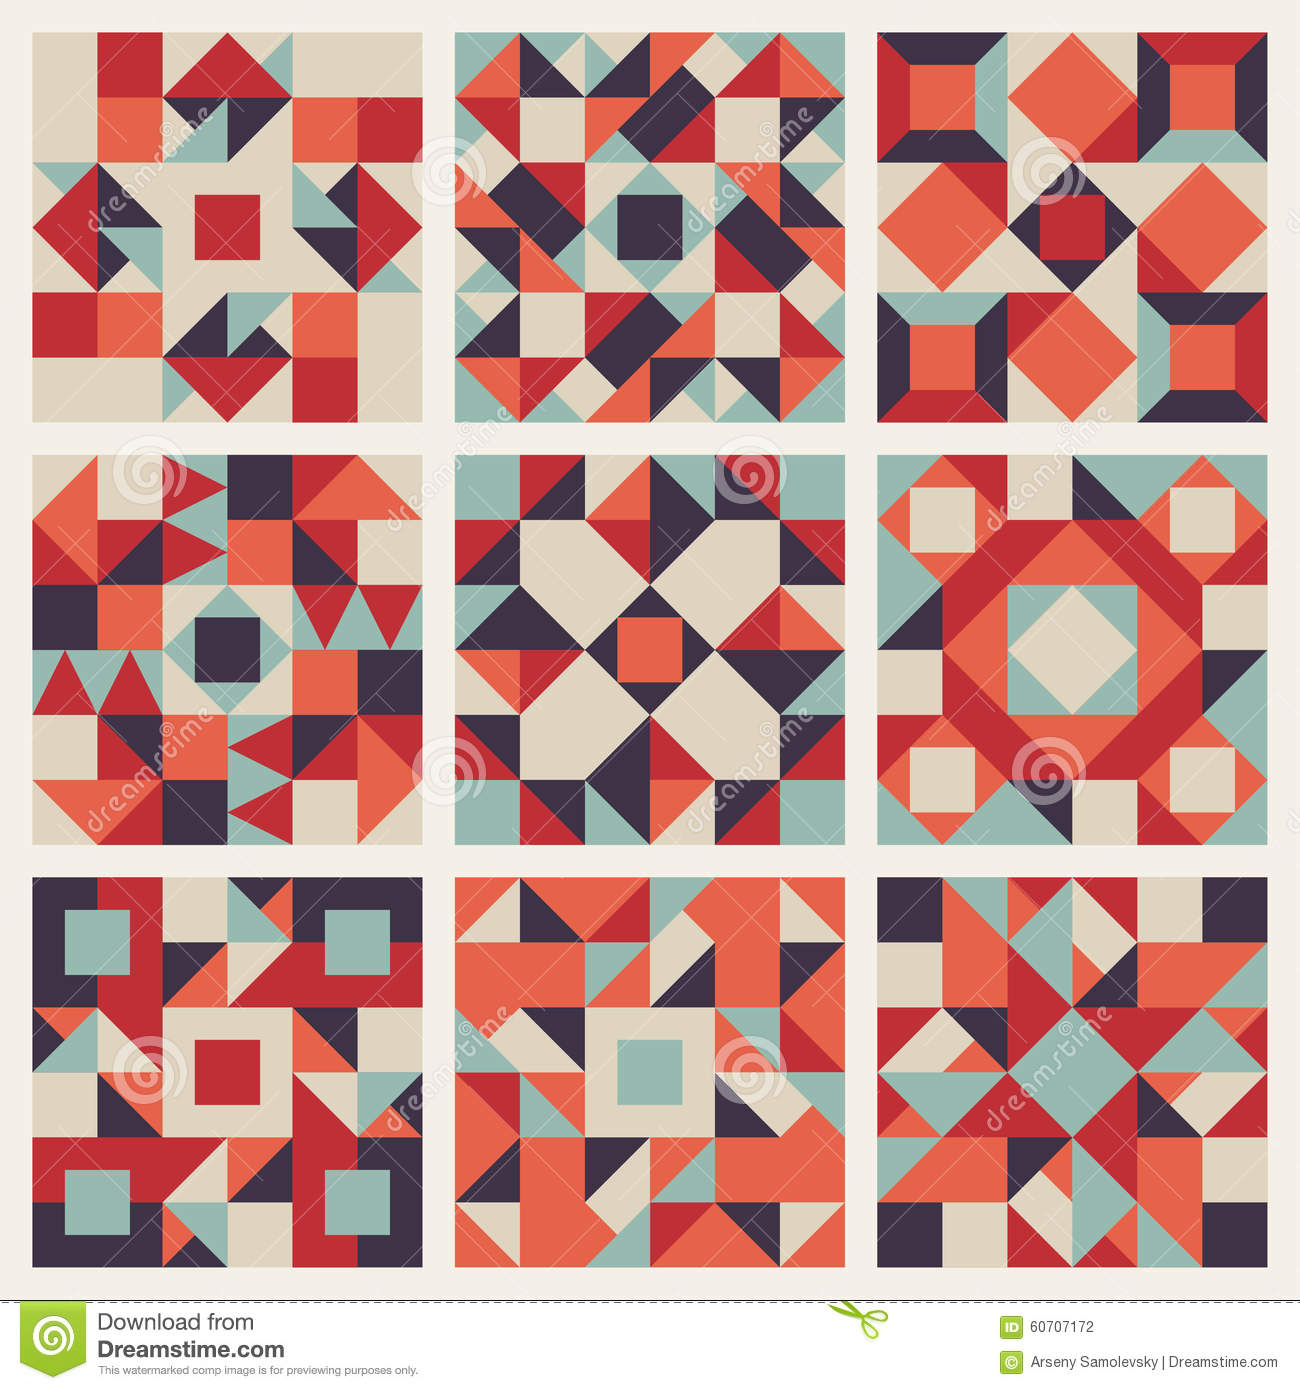 Vector Seamless Blue Red Orange Geometric Ethnic Square Quilt Pattern Collection Stock Vector Illustration Of Modern Quilting 60707172